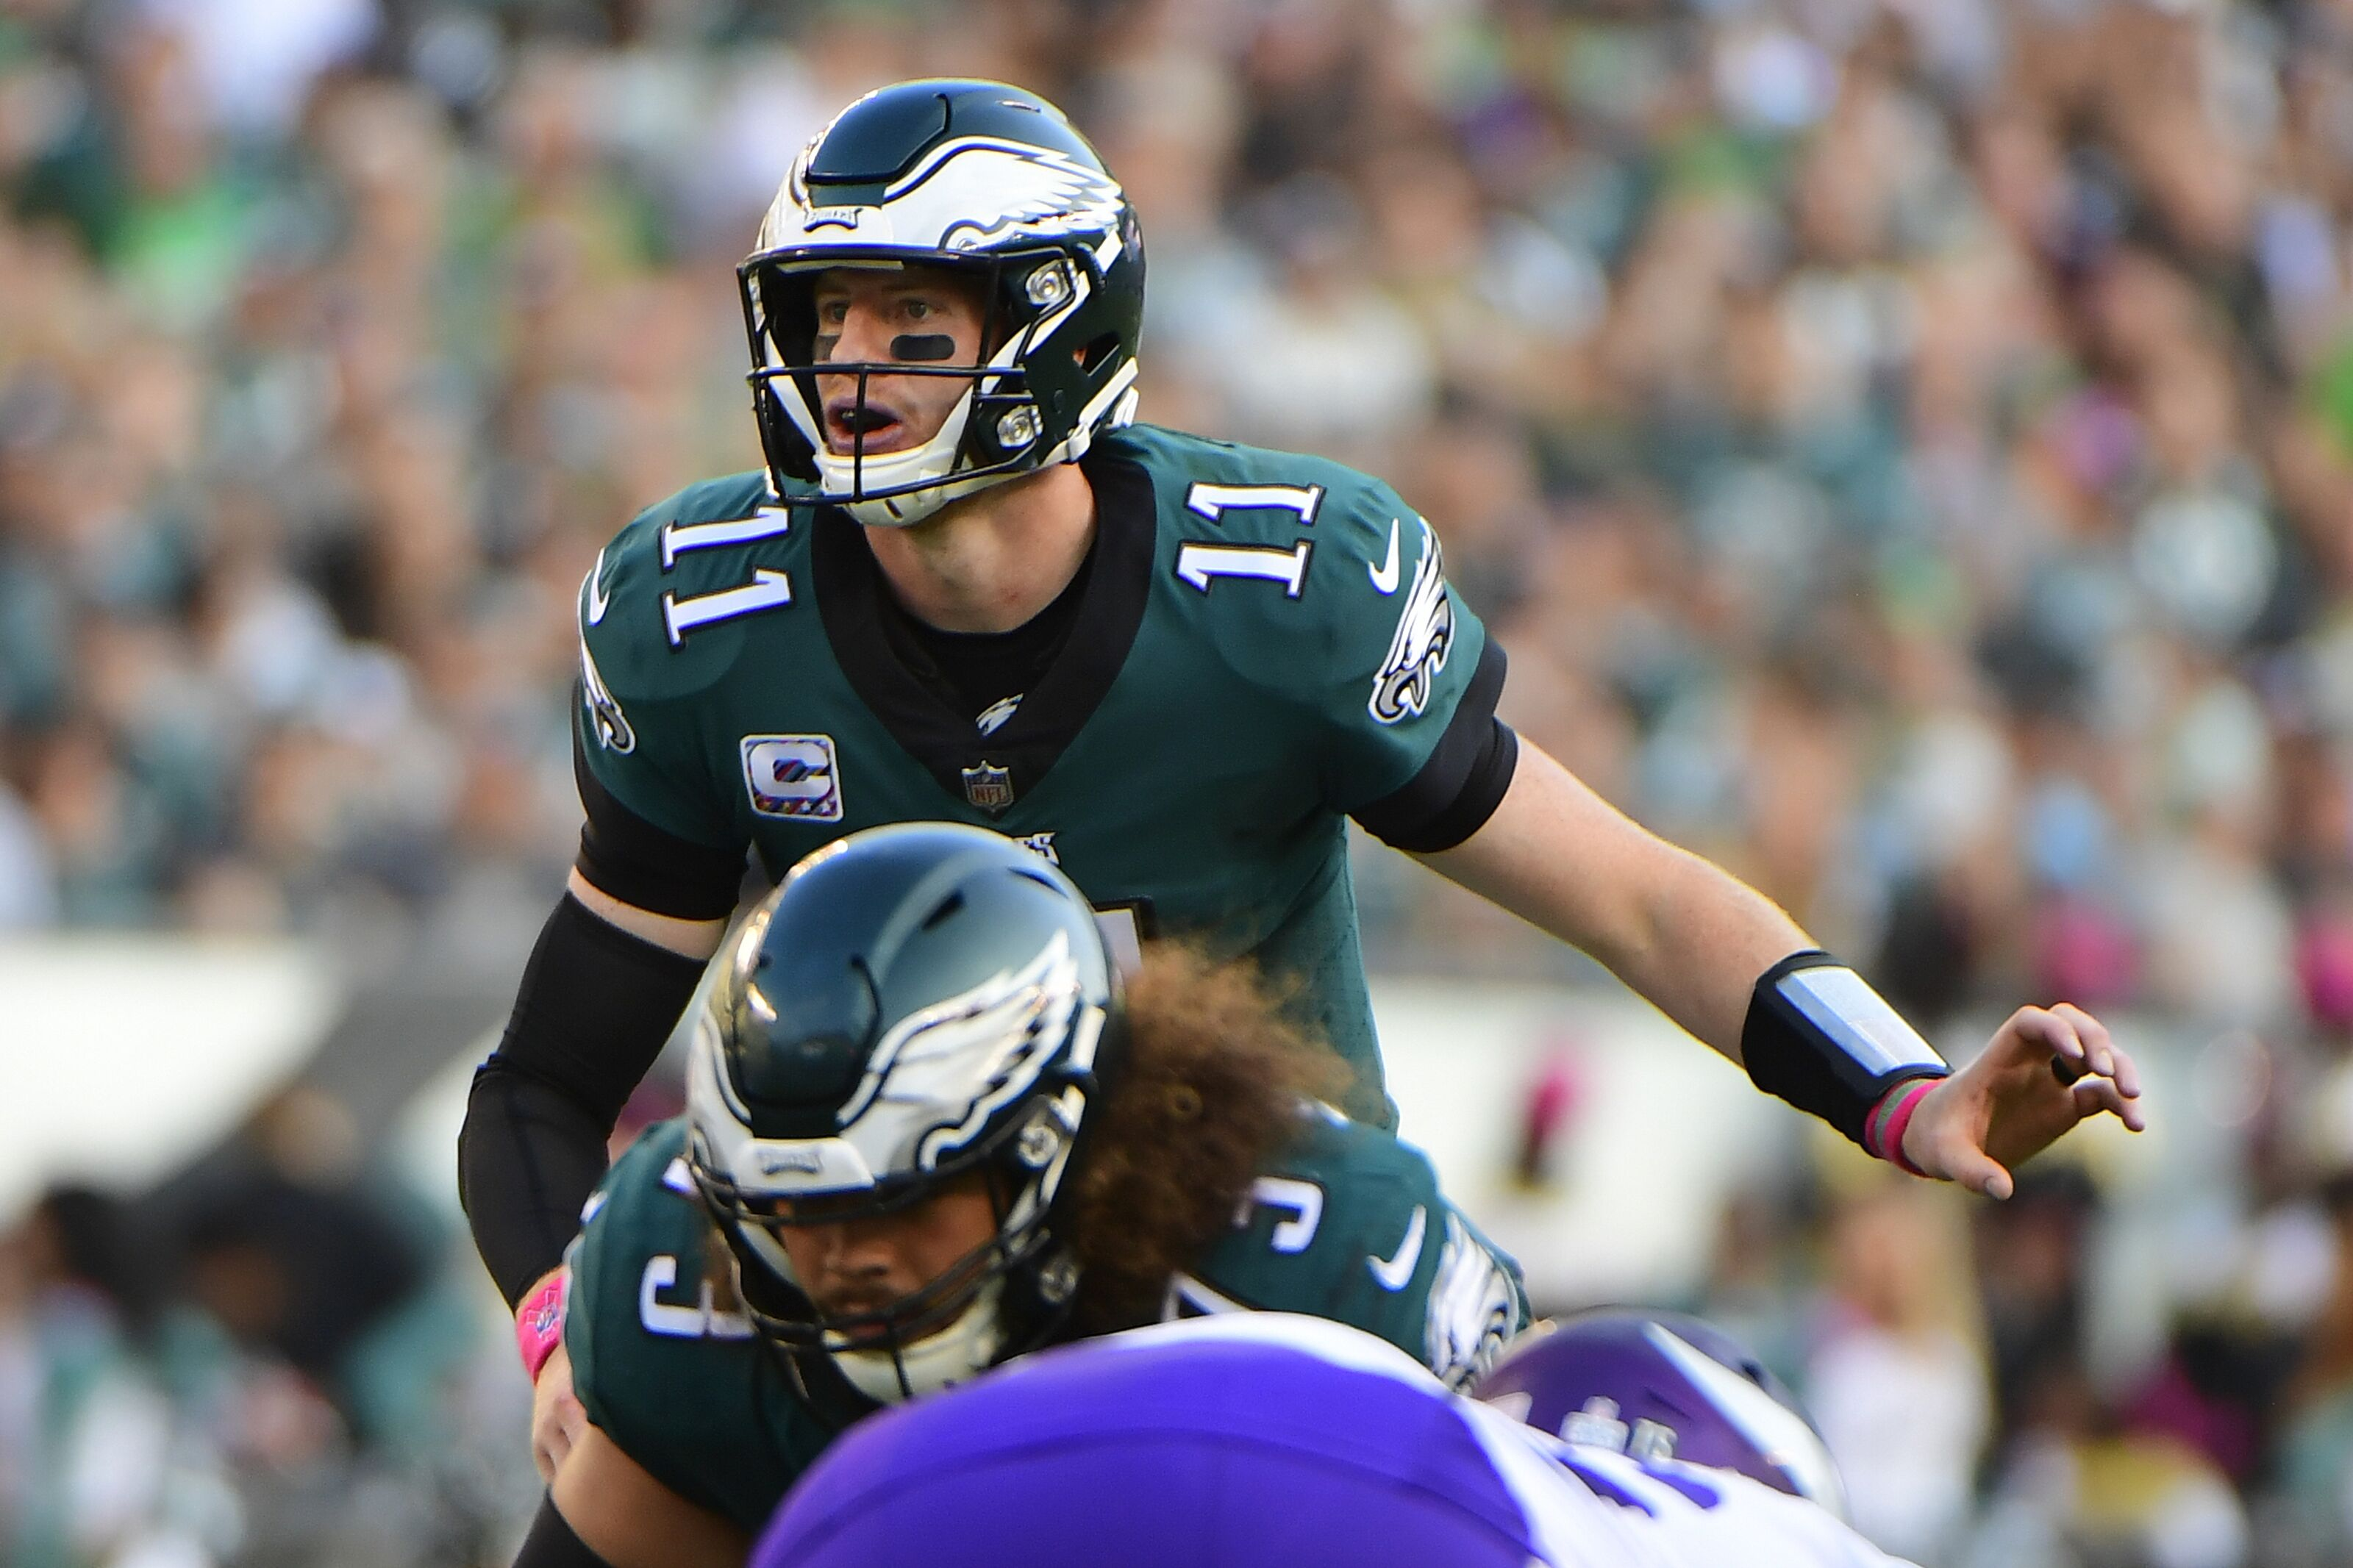 PHILADELPHIA, PA - OCTOBER 07: Carson Wentz #11 of the Philadelphia Eagles calls a play against the Minnesota Vikings during the second quarter at Lincoln Financial Field on October 7, 2018 in Philadelphia, Pennsylvania. The Vikings won 23-21. (Photo by Corey Perrine/Getty Images)